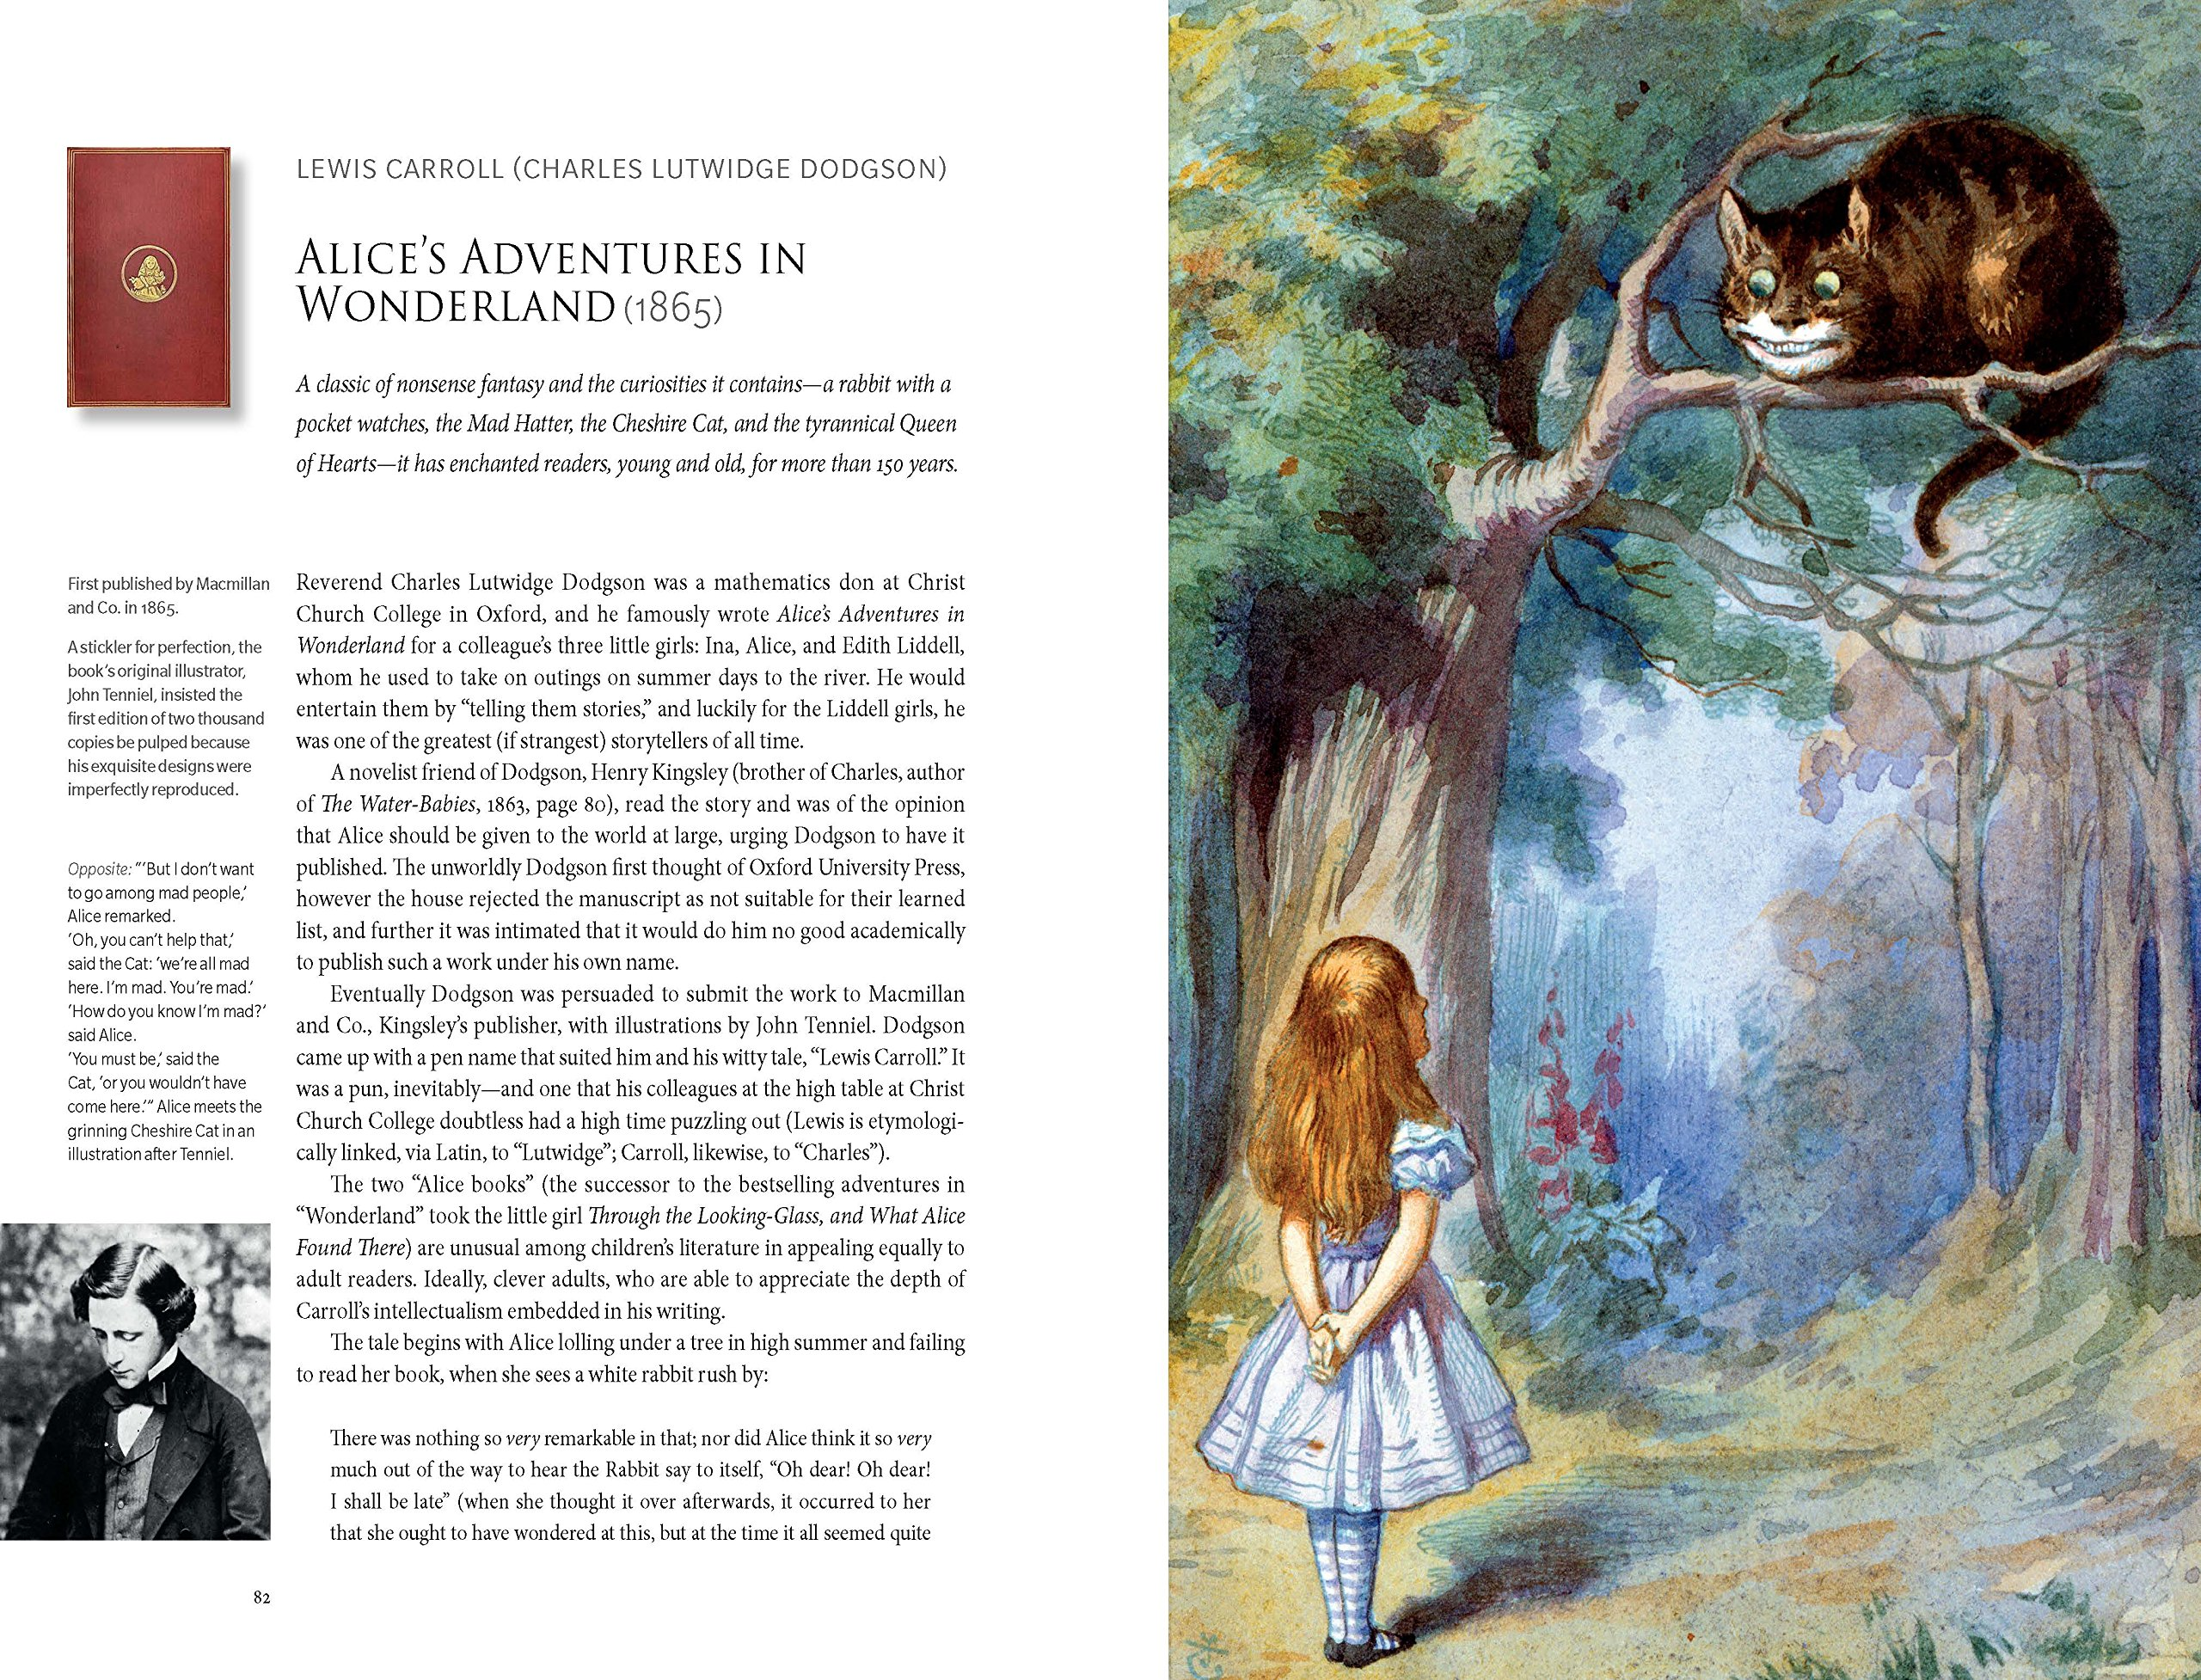 the fairy tales of lewis carroll and charles lutwidge dodgson Lewis carroll is the better-known pen name of lutwidge dodgson, an english author and mathematician he is remembered today for his books alice's adventures in wonderland and through the looking glass in the sisters grimm, he is implied to be an everafter historian like the brothers grimm.